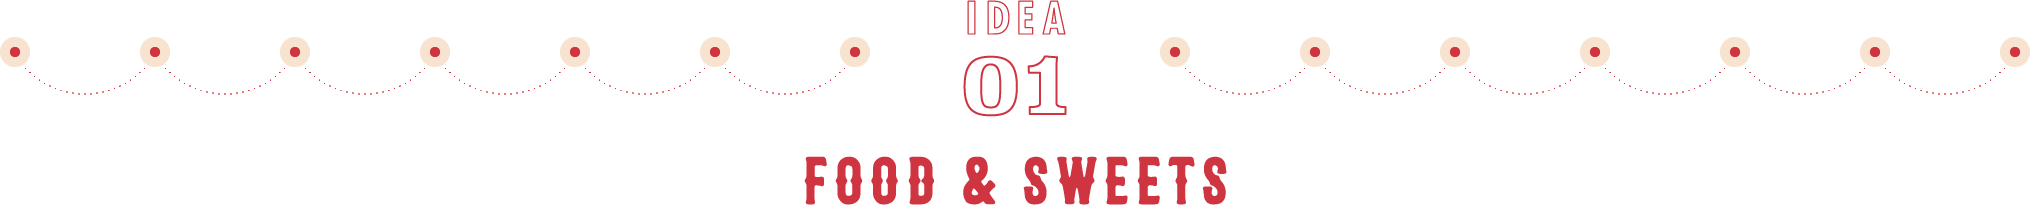 idea01 FOOD & SWEETS